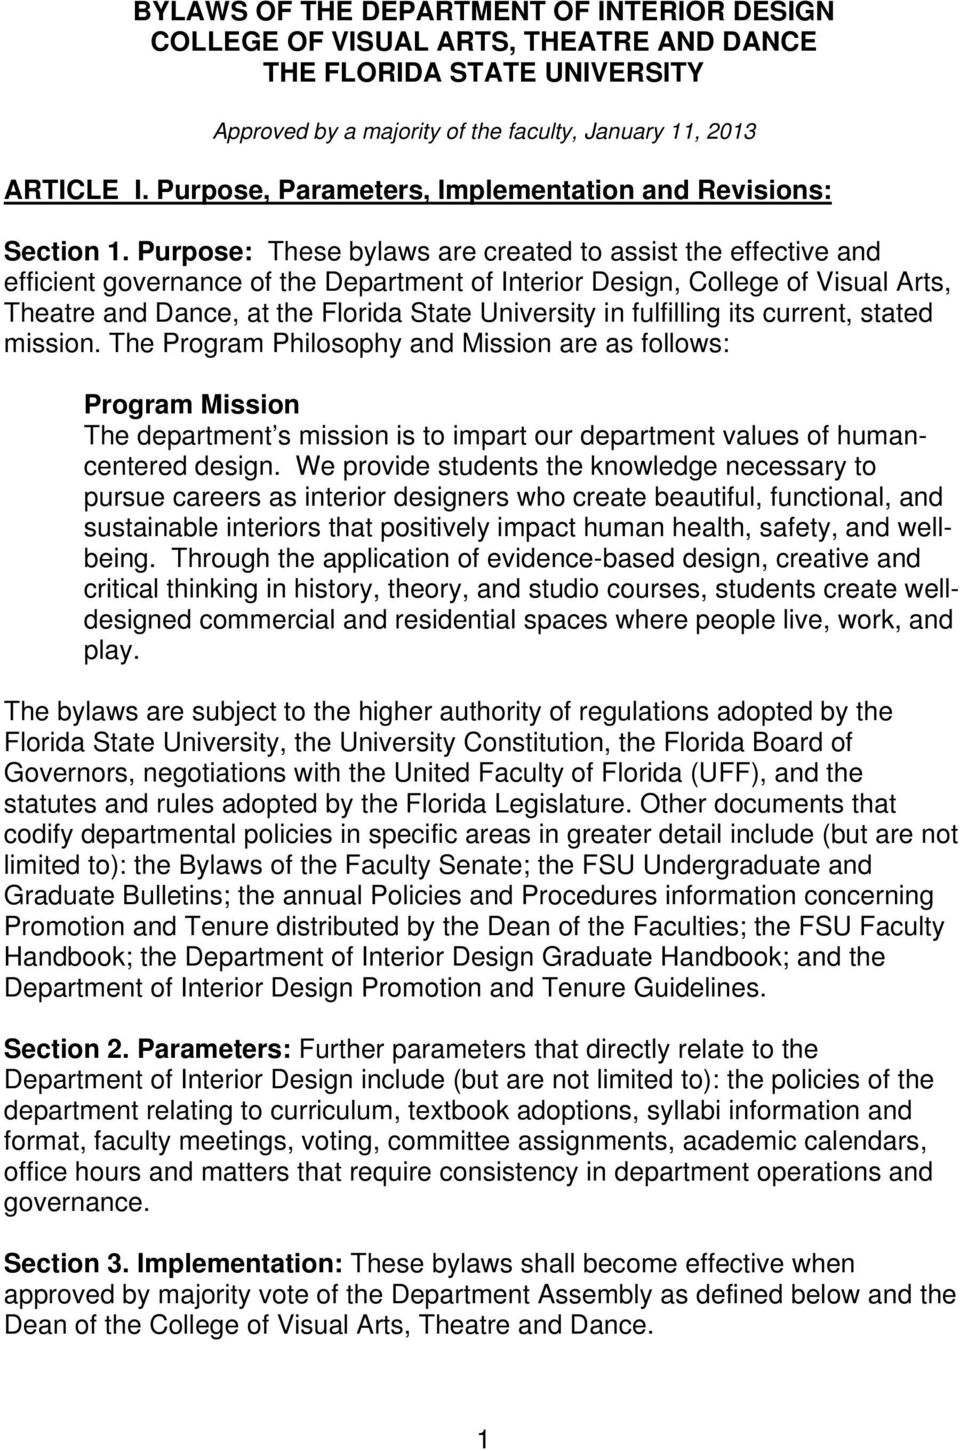 bylaws of the department of interior design college of visual arts